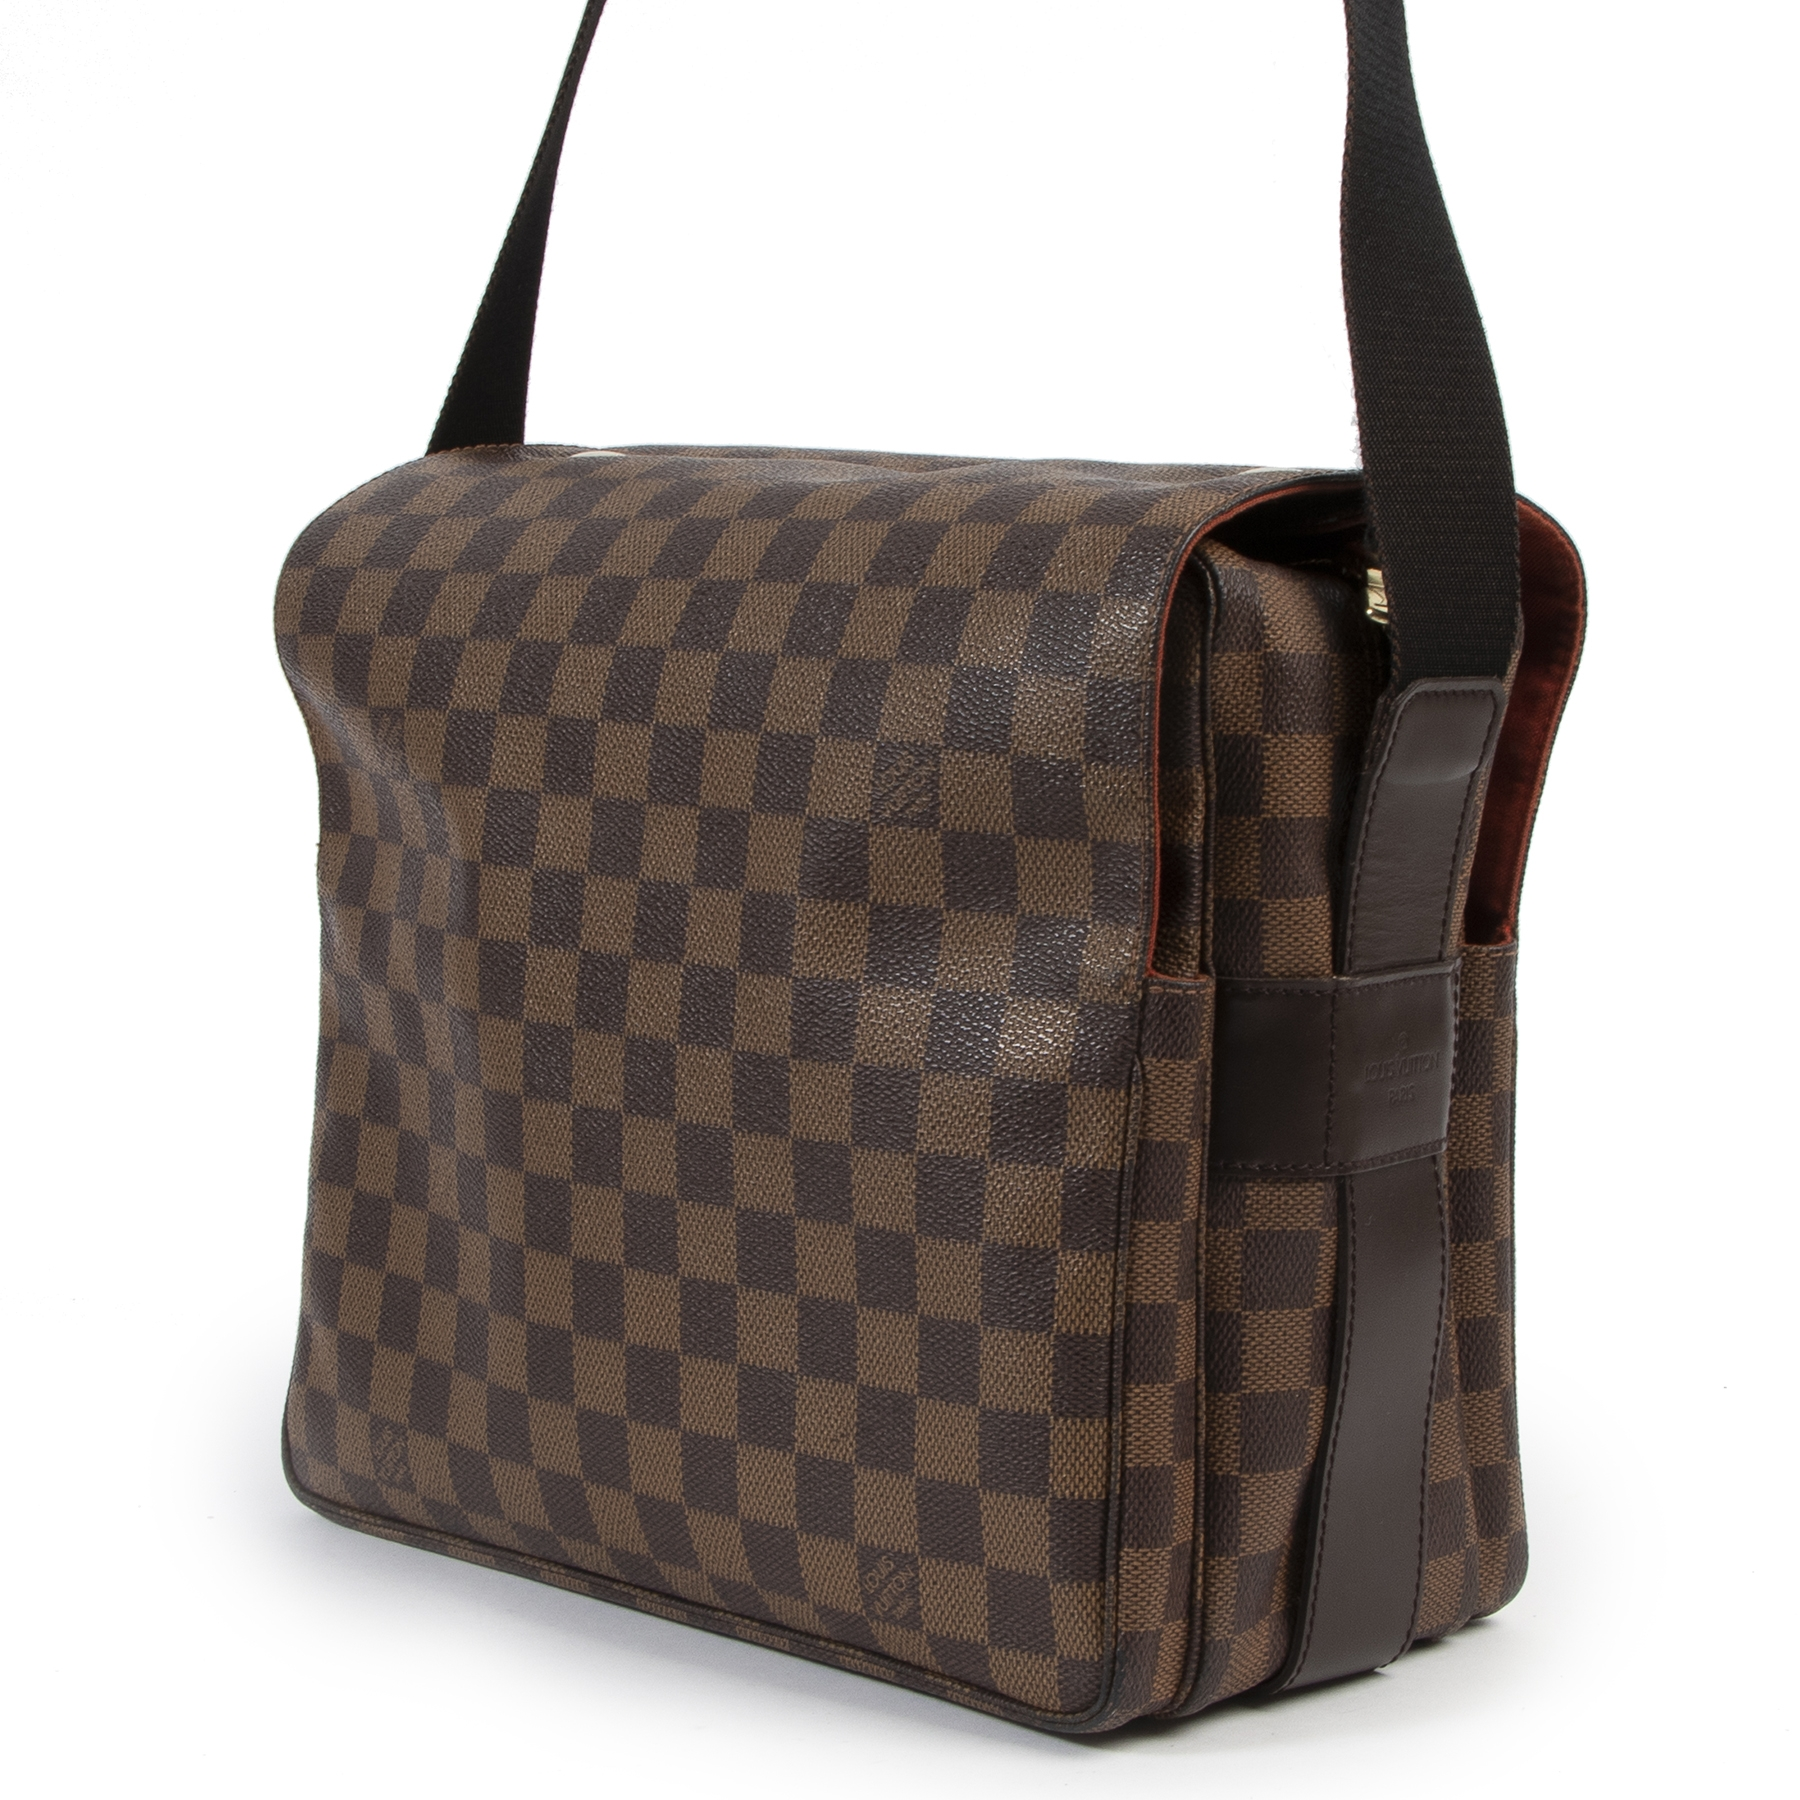 100% Authentic Louis Vuitton Damier Ebene Naviglio Bag at the right price online at Labellov